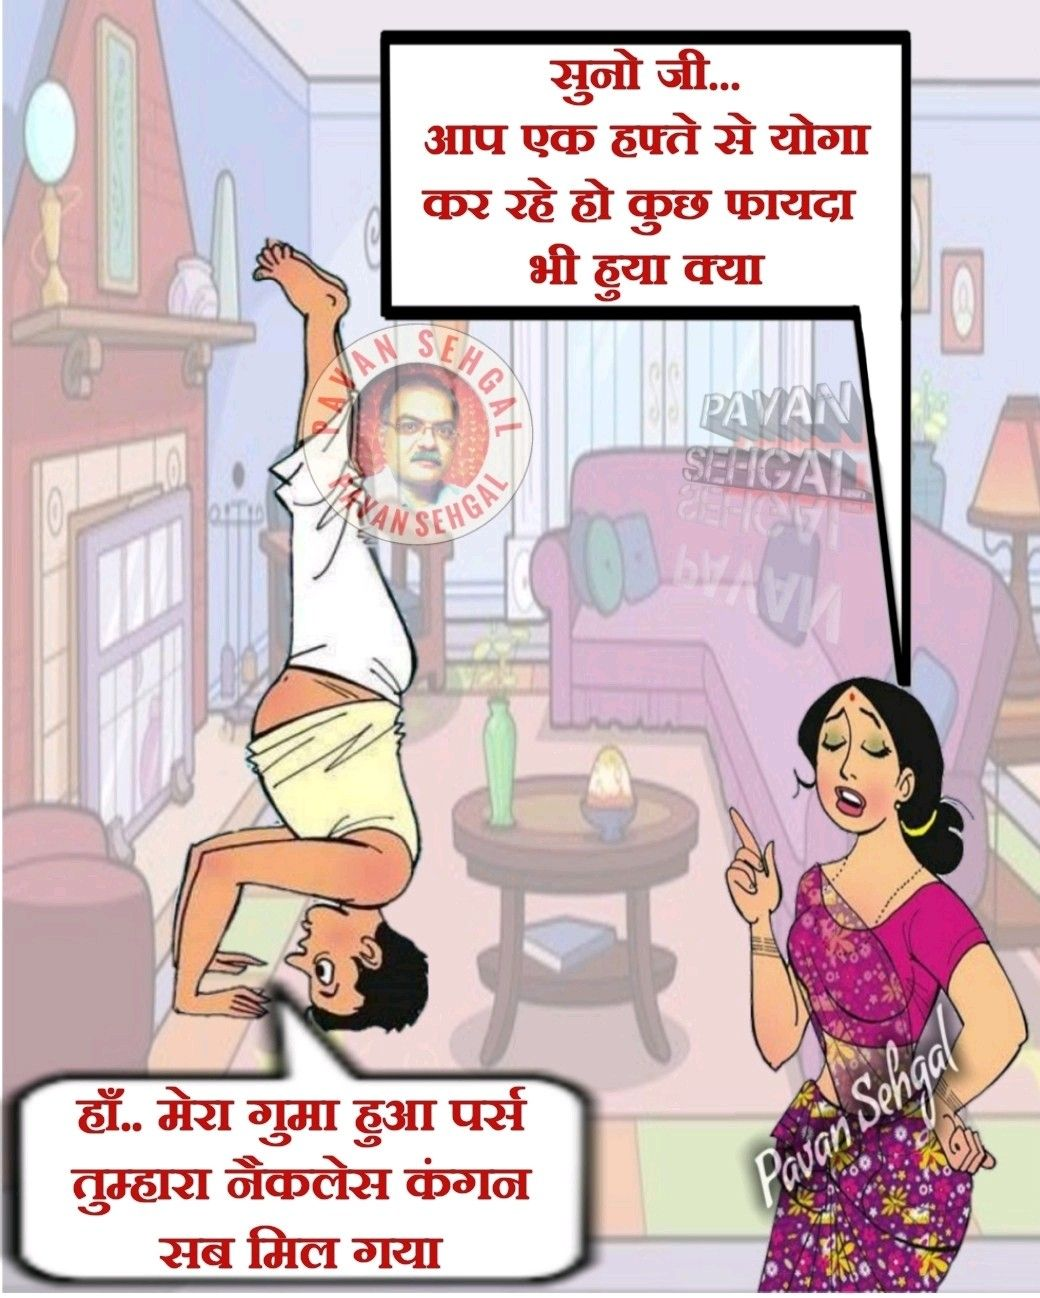 Pin by Psehgal on Funny jokes Jokes in hindi, Funny